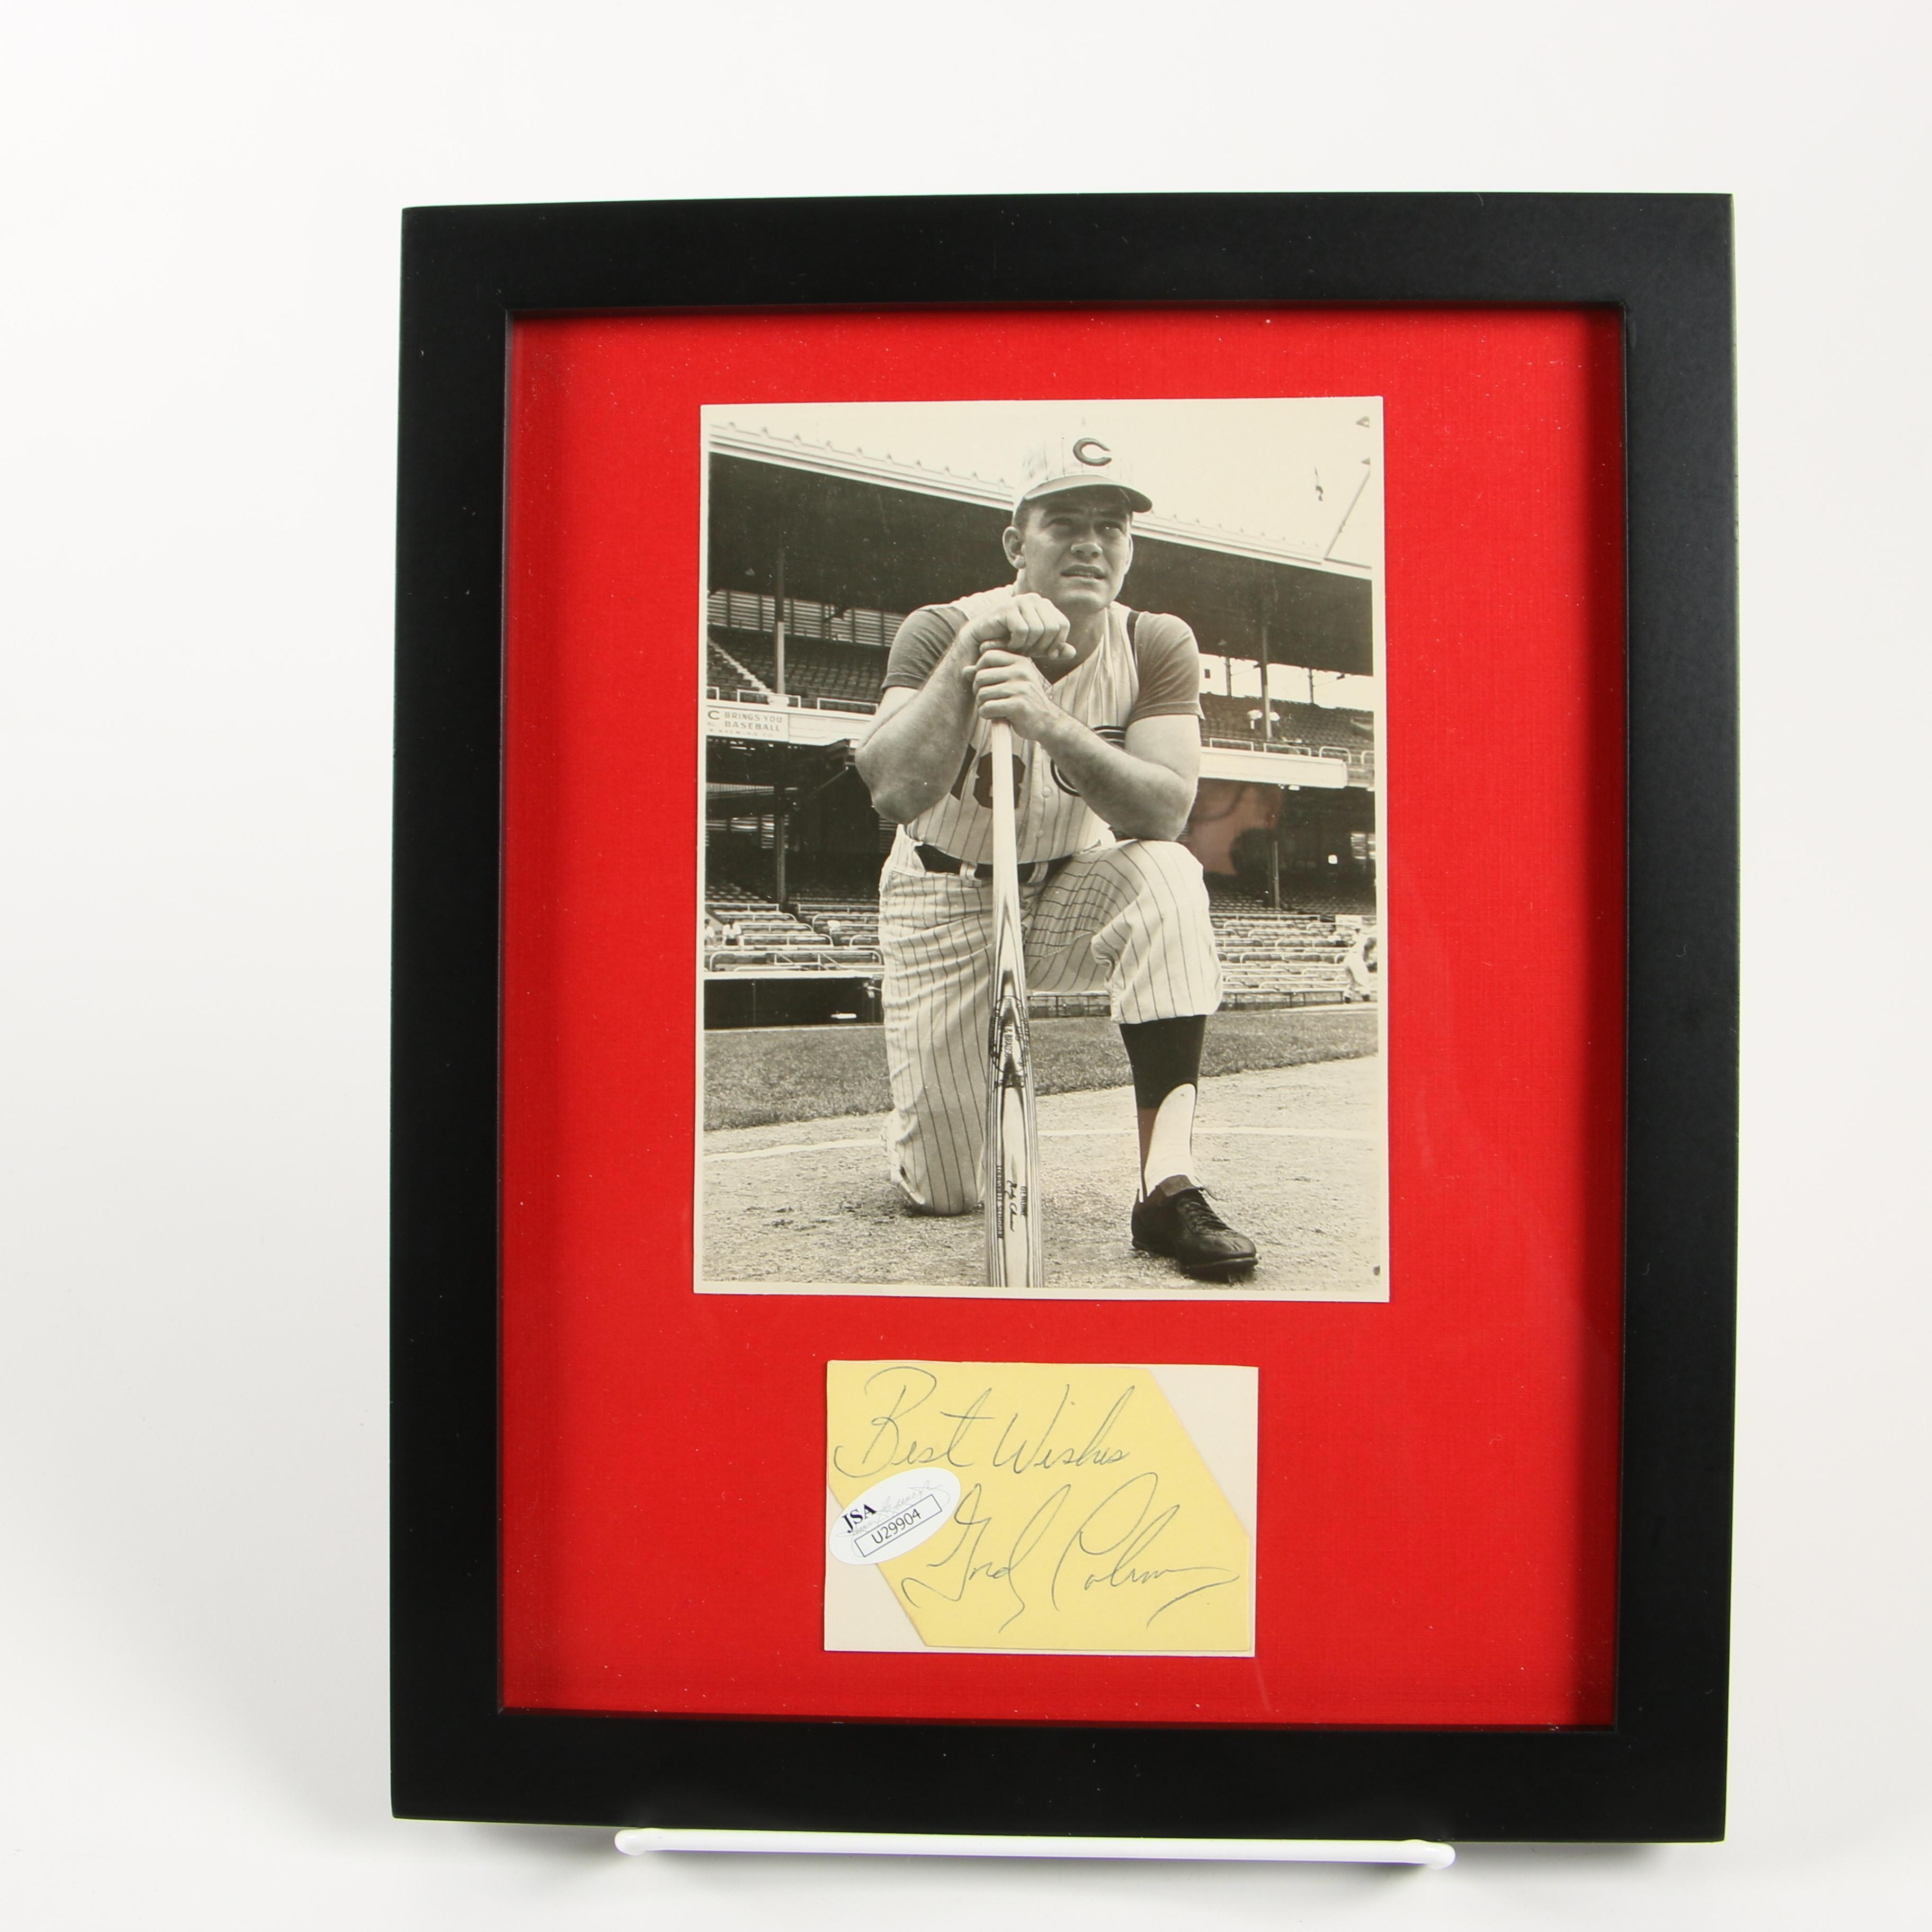 Framed Autograph and Photo of Gordy Coleman of the Cincinnati Reds JSA/COA